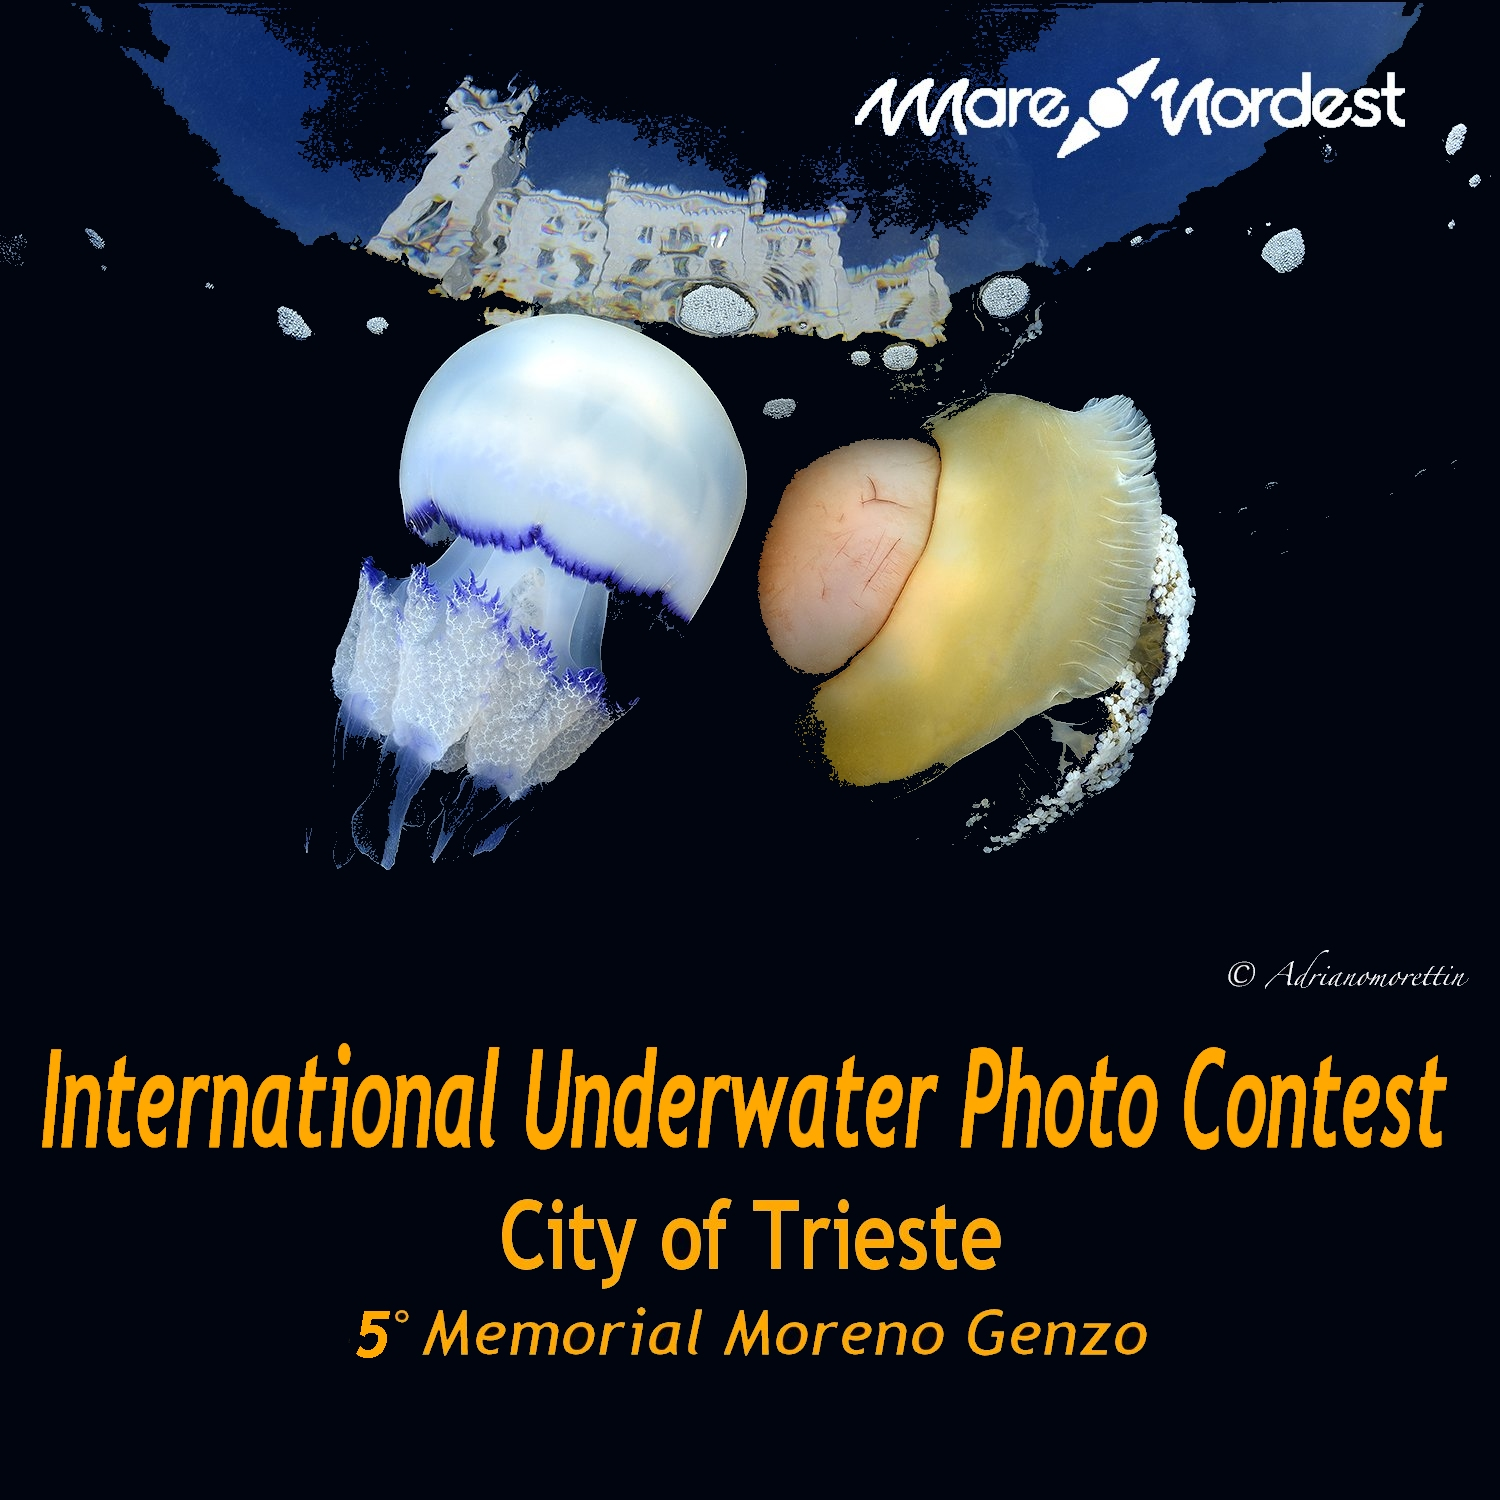 International Underwater Photo Contest